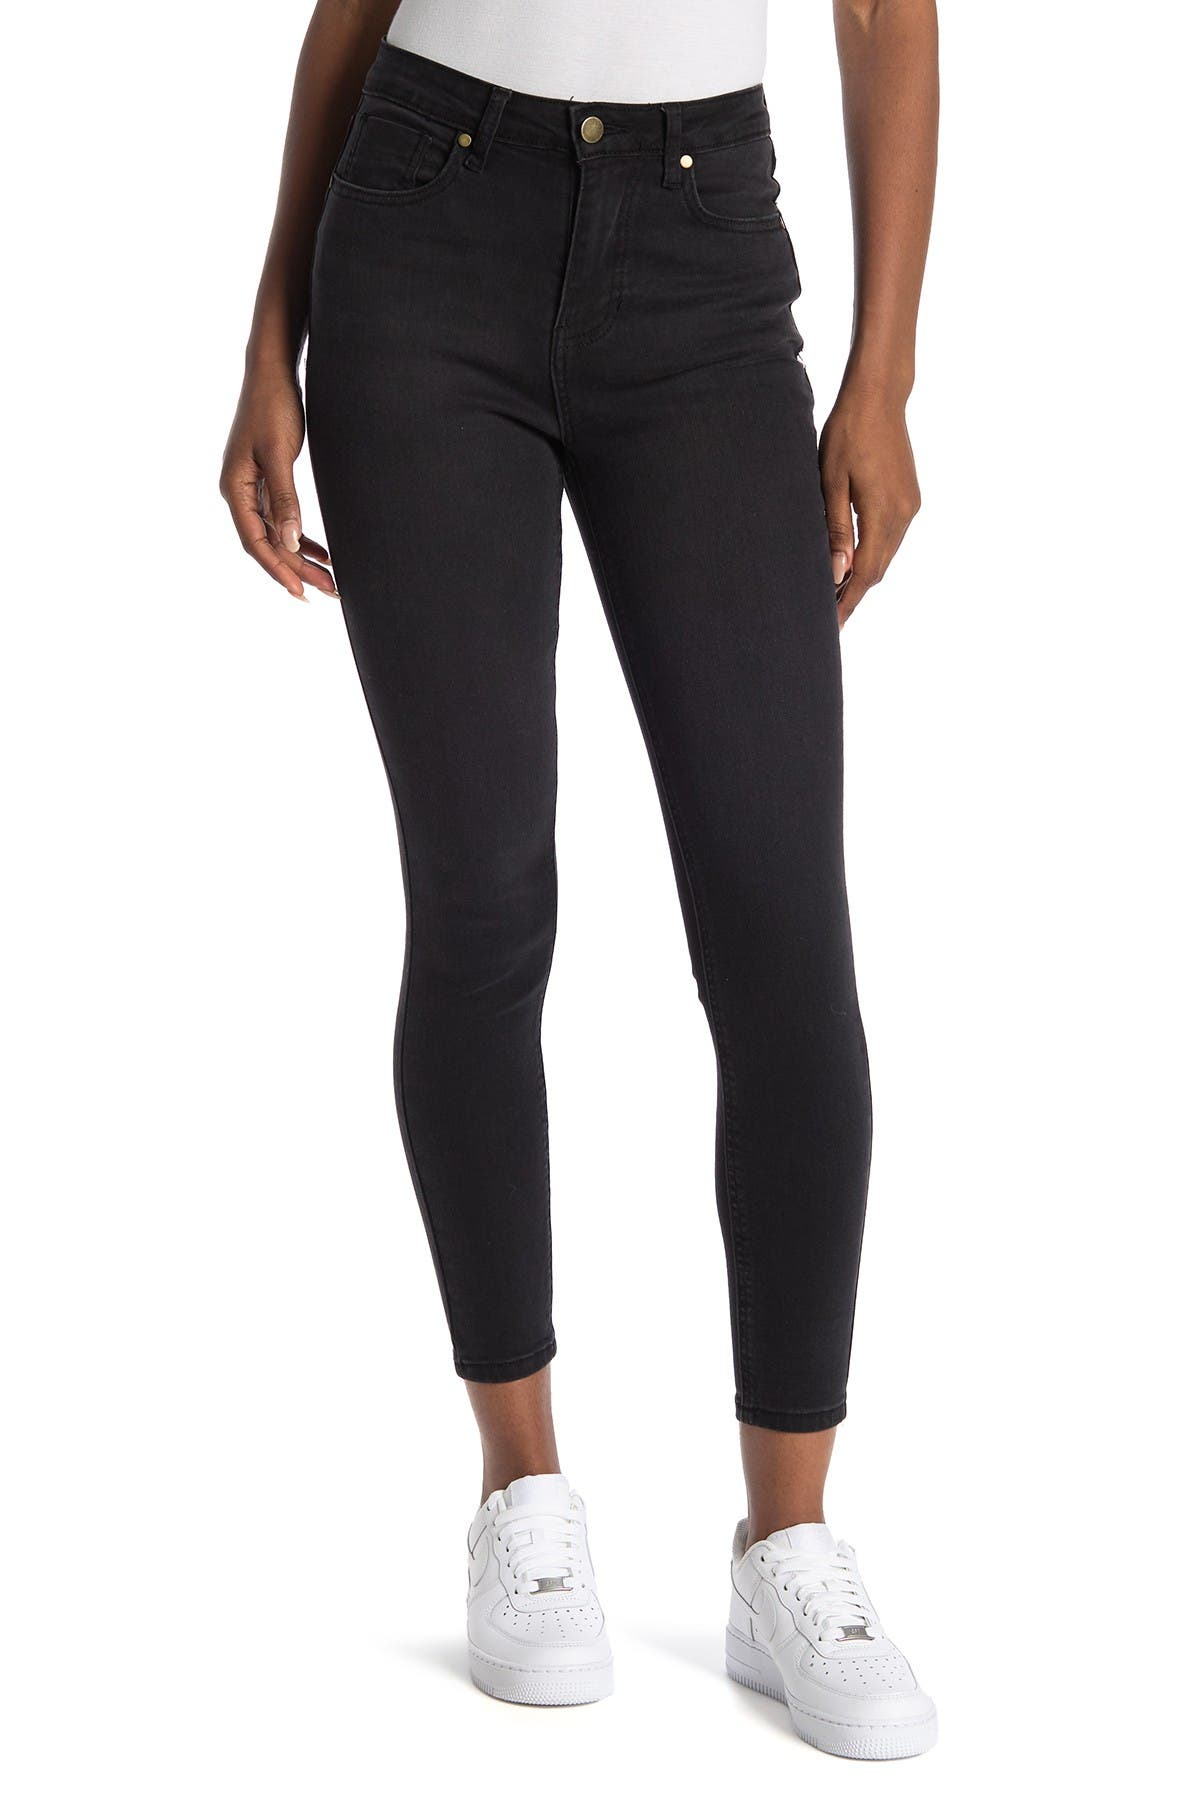 Image of Abound High Rise Skinny Jean - Black